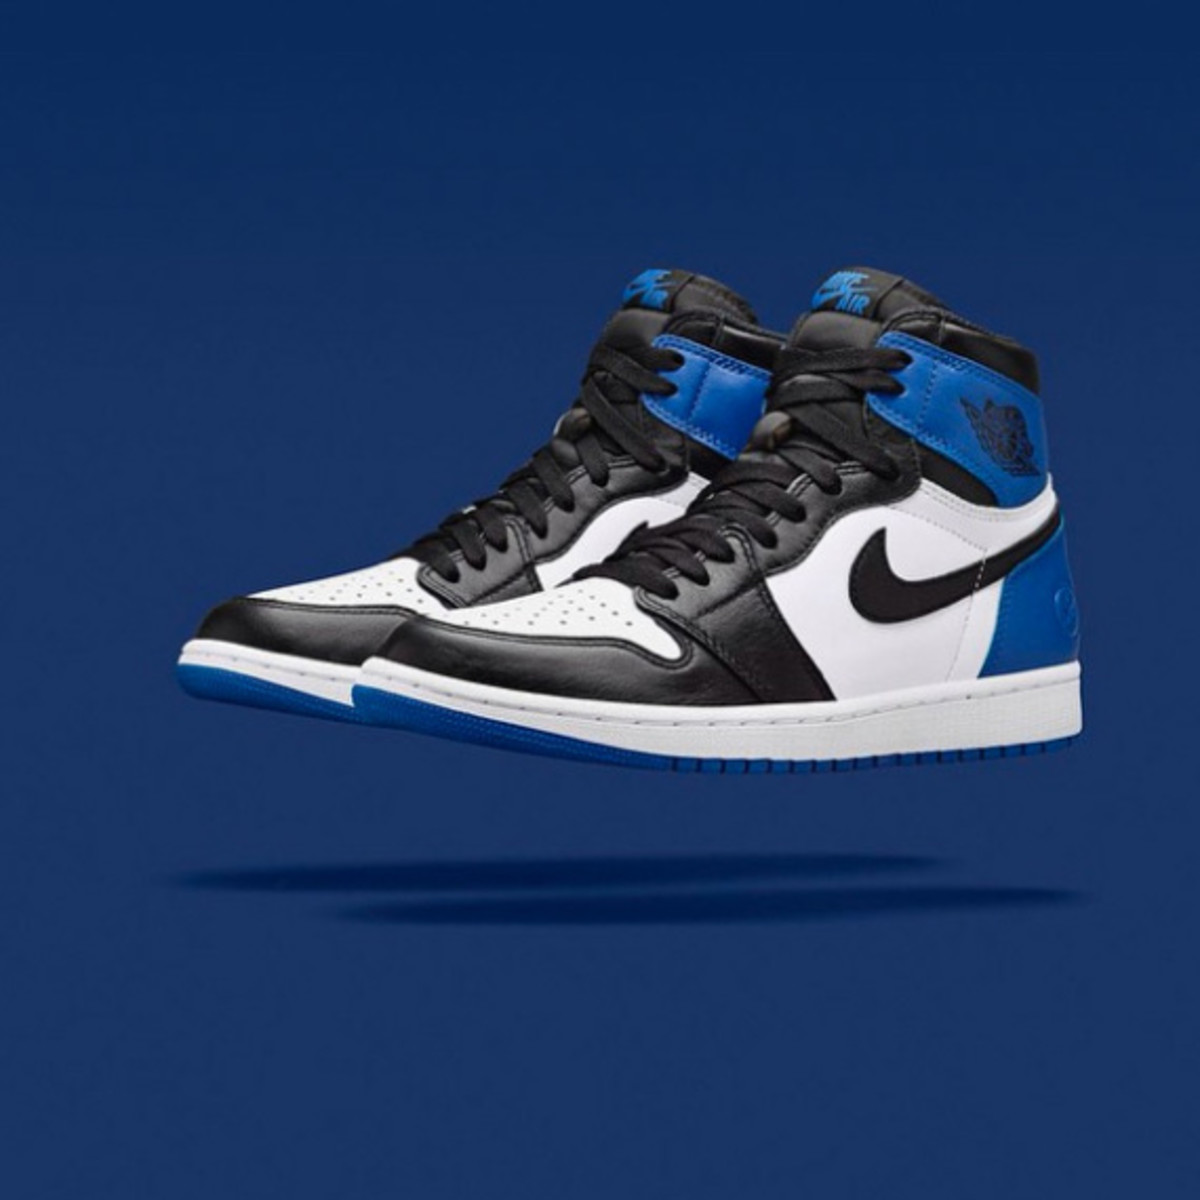 fragment design x Air Jordan 1 Retro High OG | Release Reminder - 5